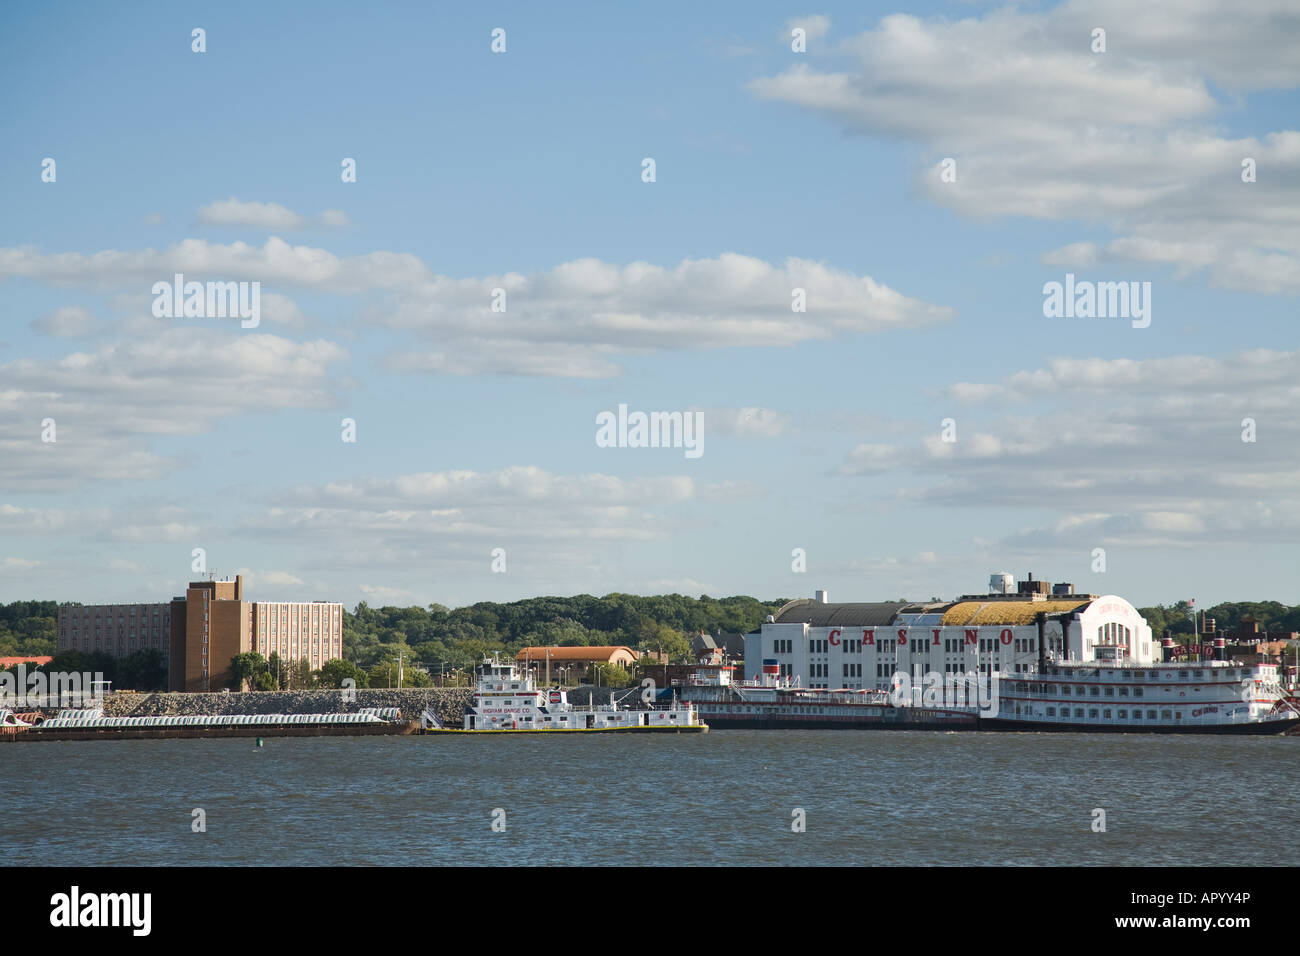 IOWA Davenport Mississippi River Rock Island and riverboats across water - Stock Image